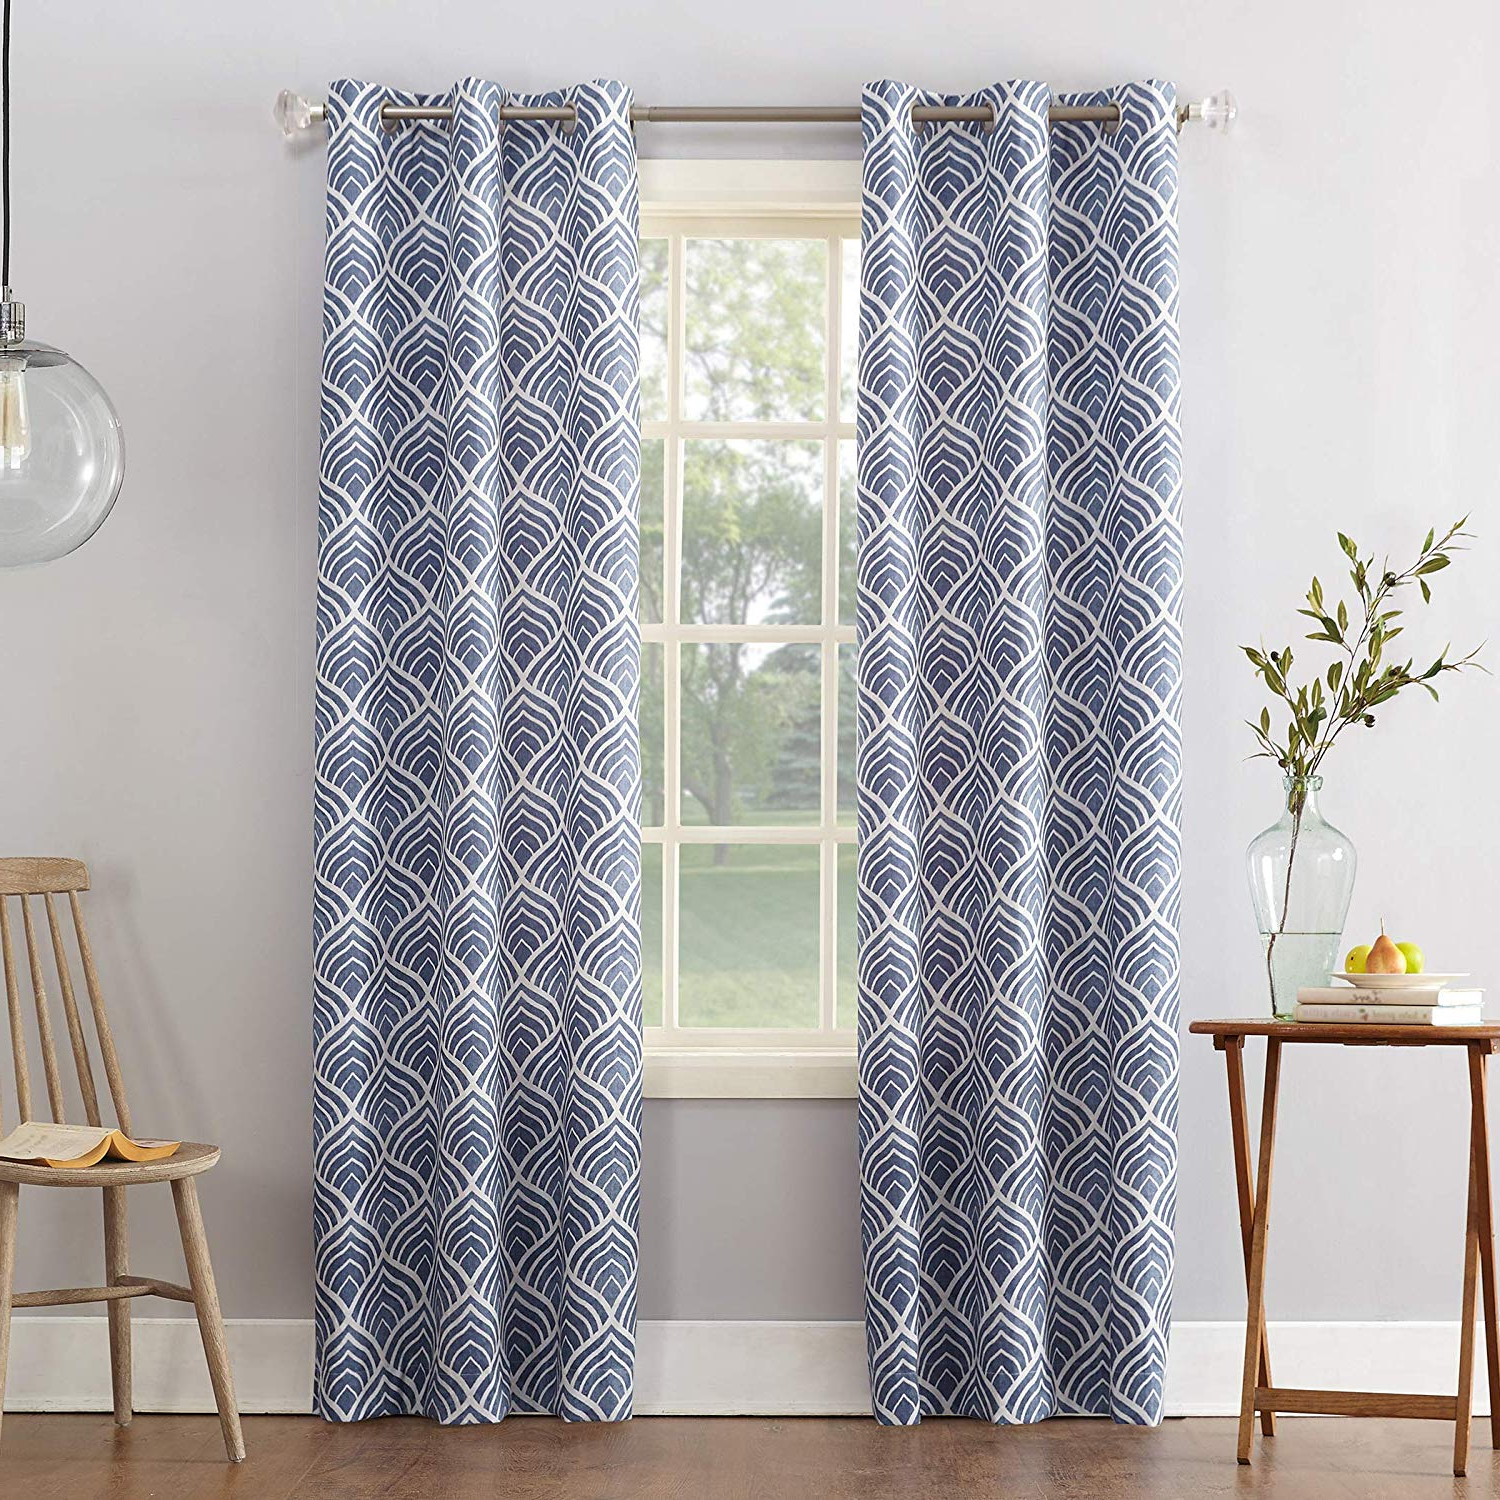 "Cooper Textured Thermal Insulated Grommet Curtain Panels Pertaining To Favorite Sun Zero Cooper Geometric Print Thermal Insulated Room Darkening Grommet Curtain Panel 40"" X 84"" Blue (View 18 of 20)"